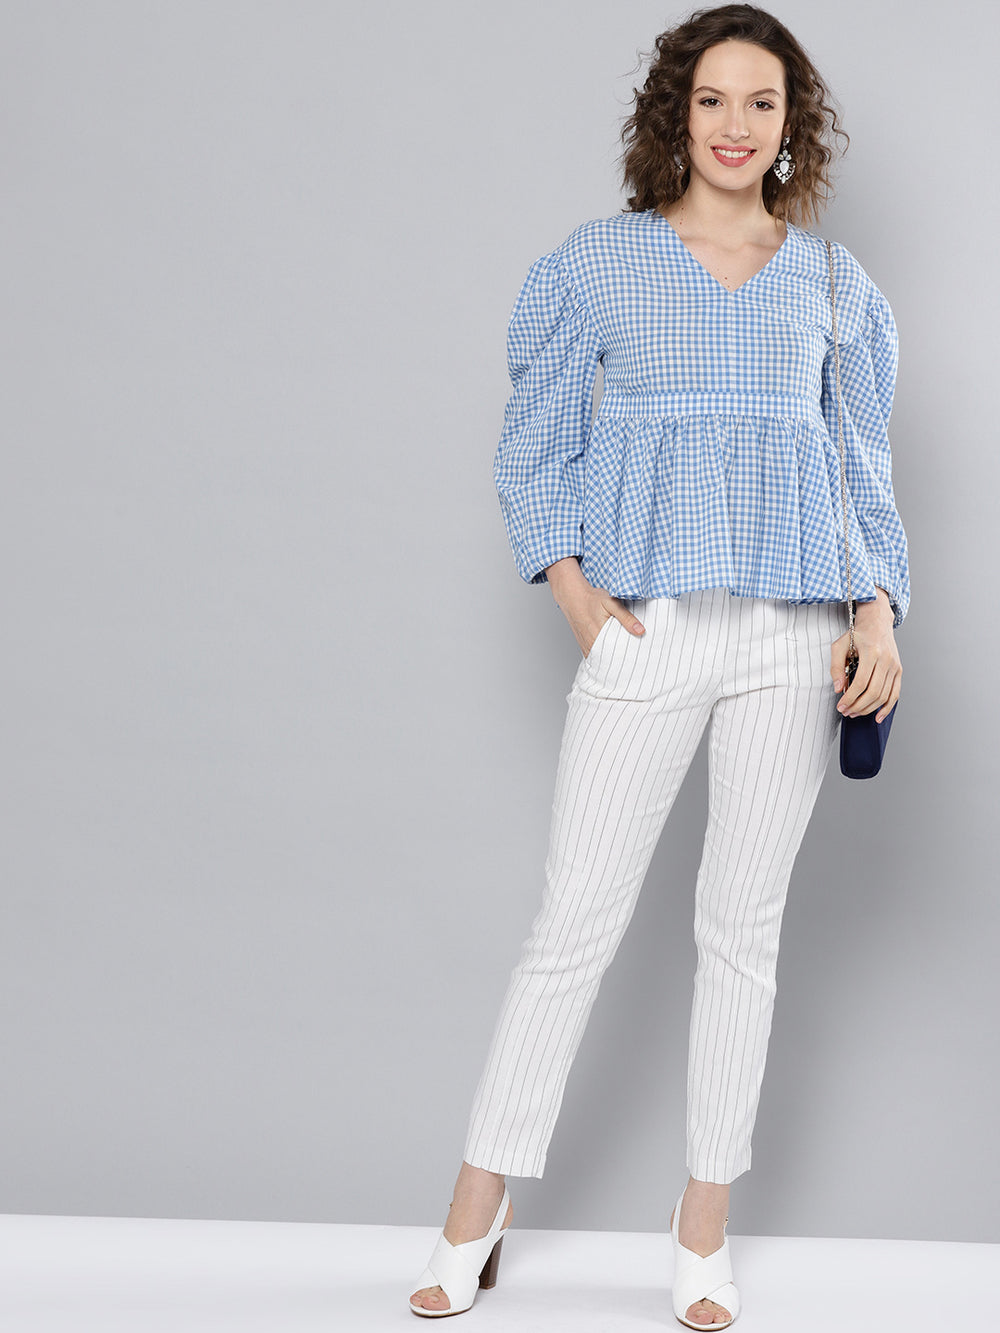 Besiva Women Blue & White Checked A-Line Top